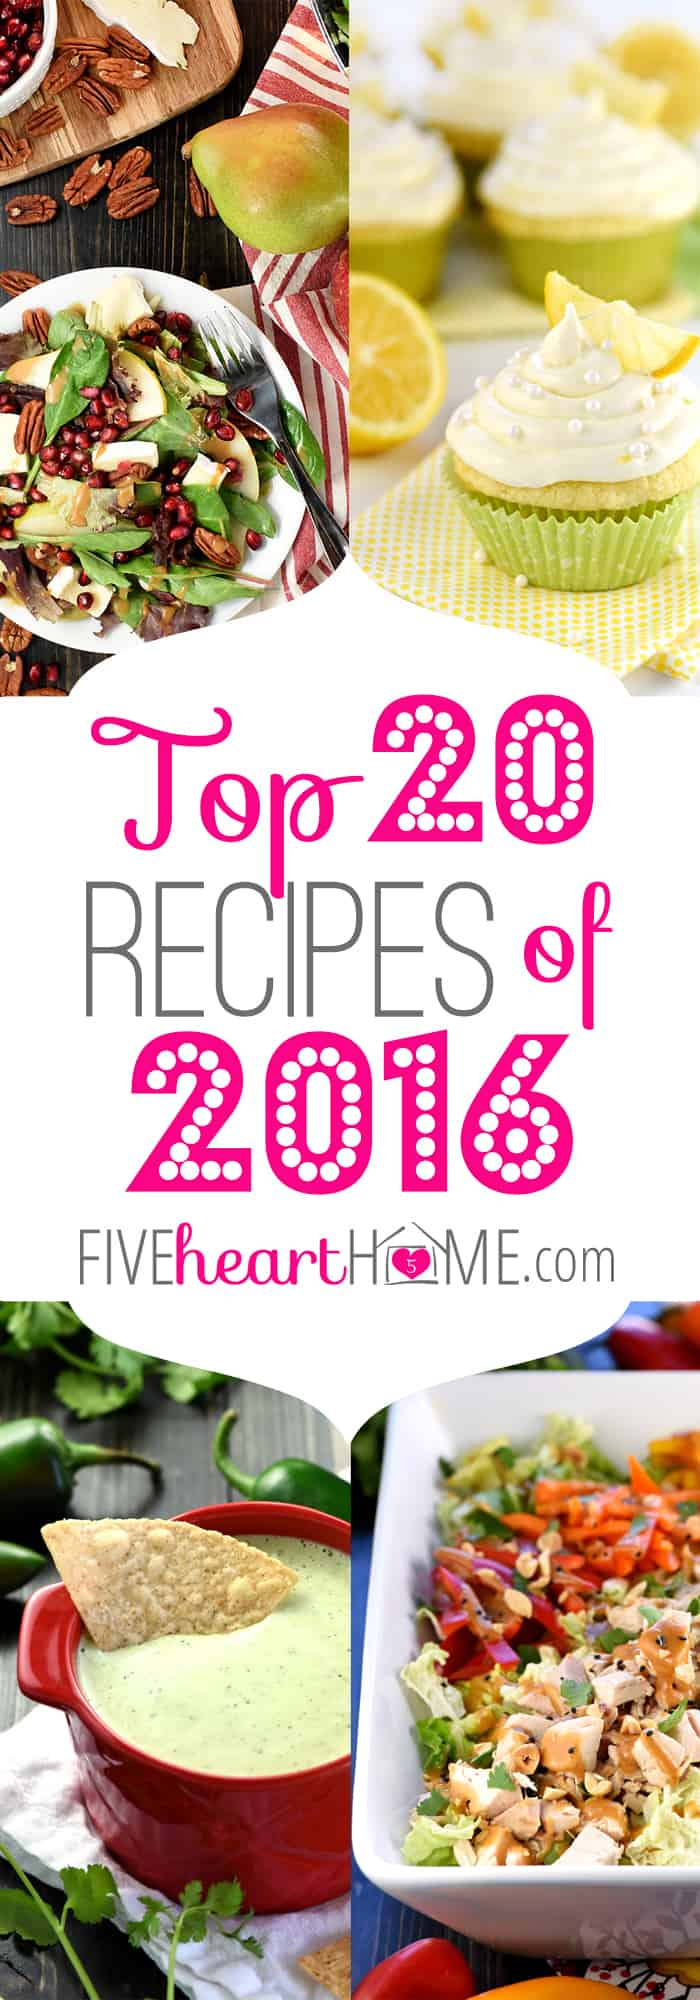 Five Heart Home's Top 20 Recipes of 2016 ~ a countdown of the year's highest traffic, most popular recipes! | FiveHeartHome.com